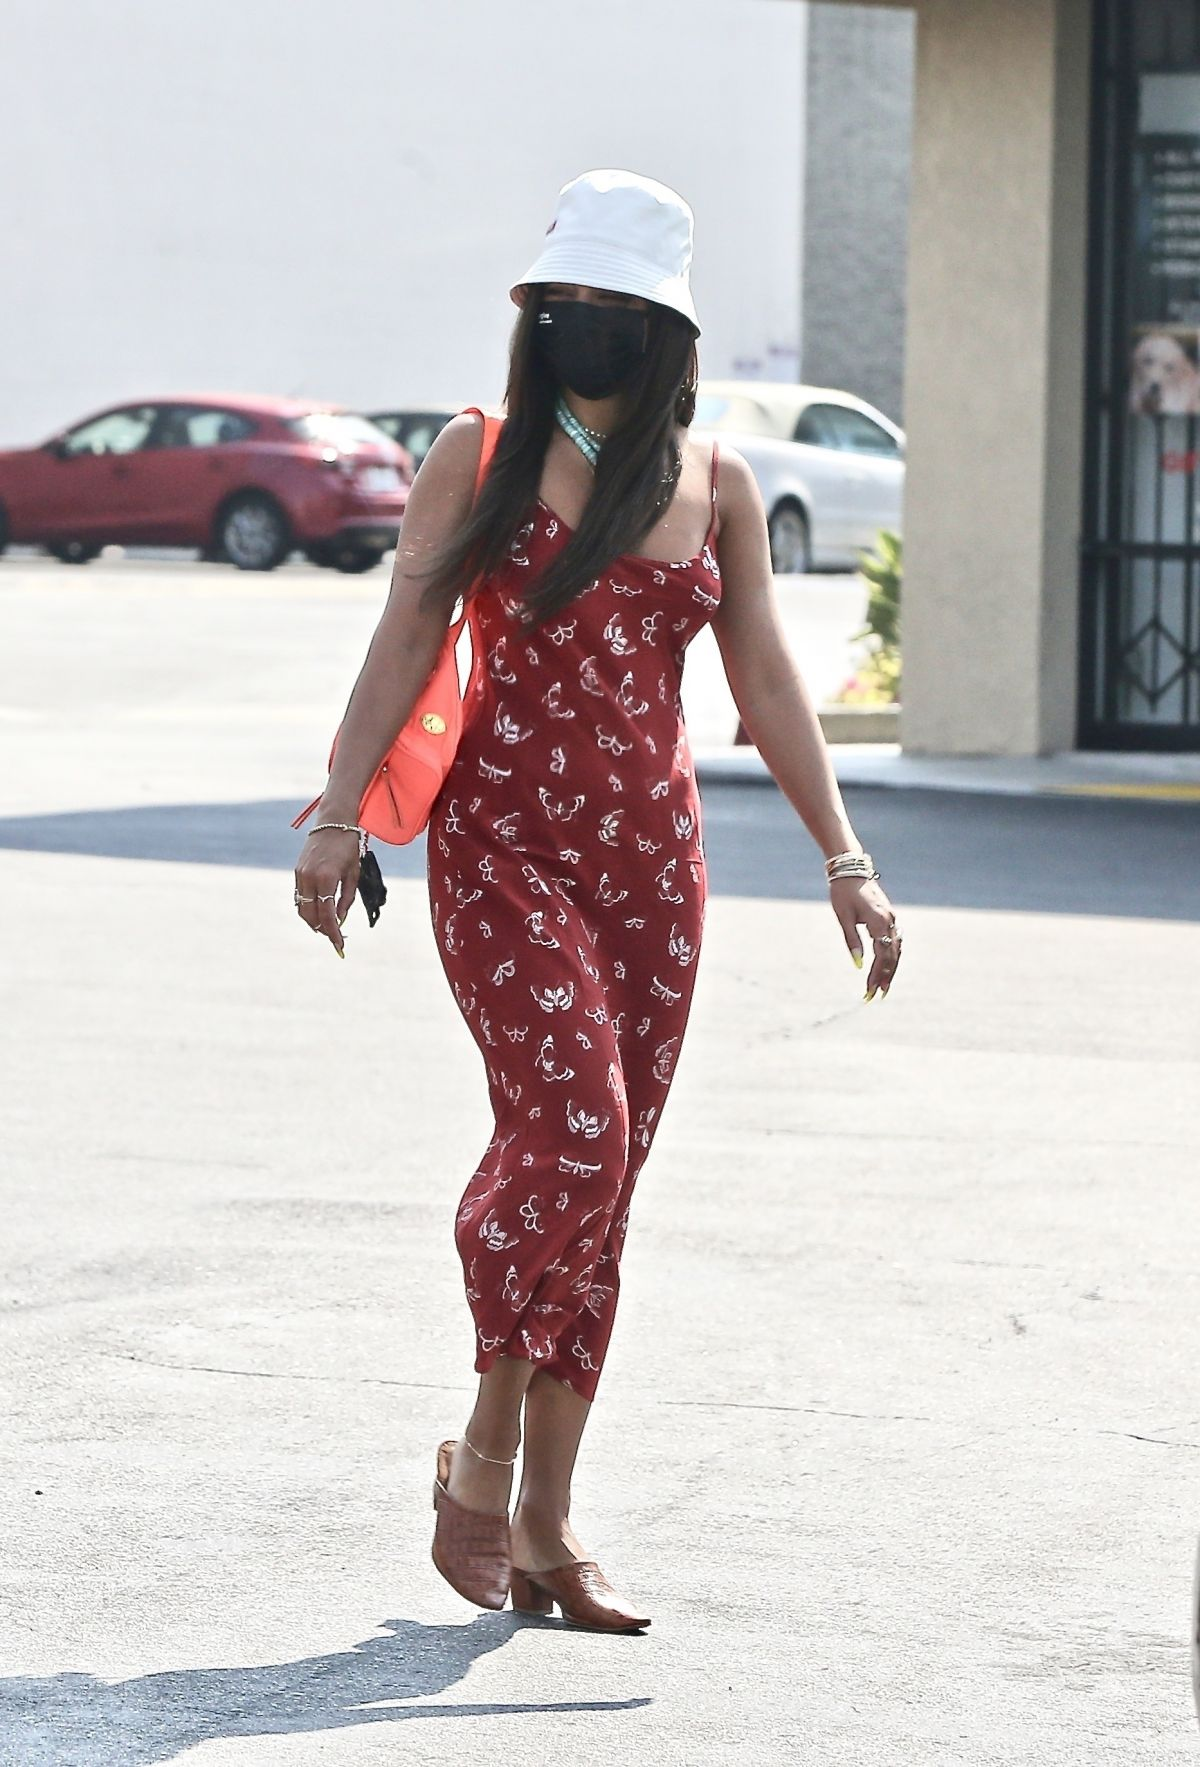 vanessa-hudgens-in-floral-print-dress-out-in-studio-city-august-22-2020